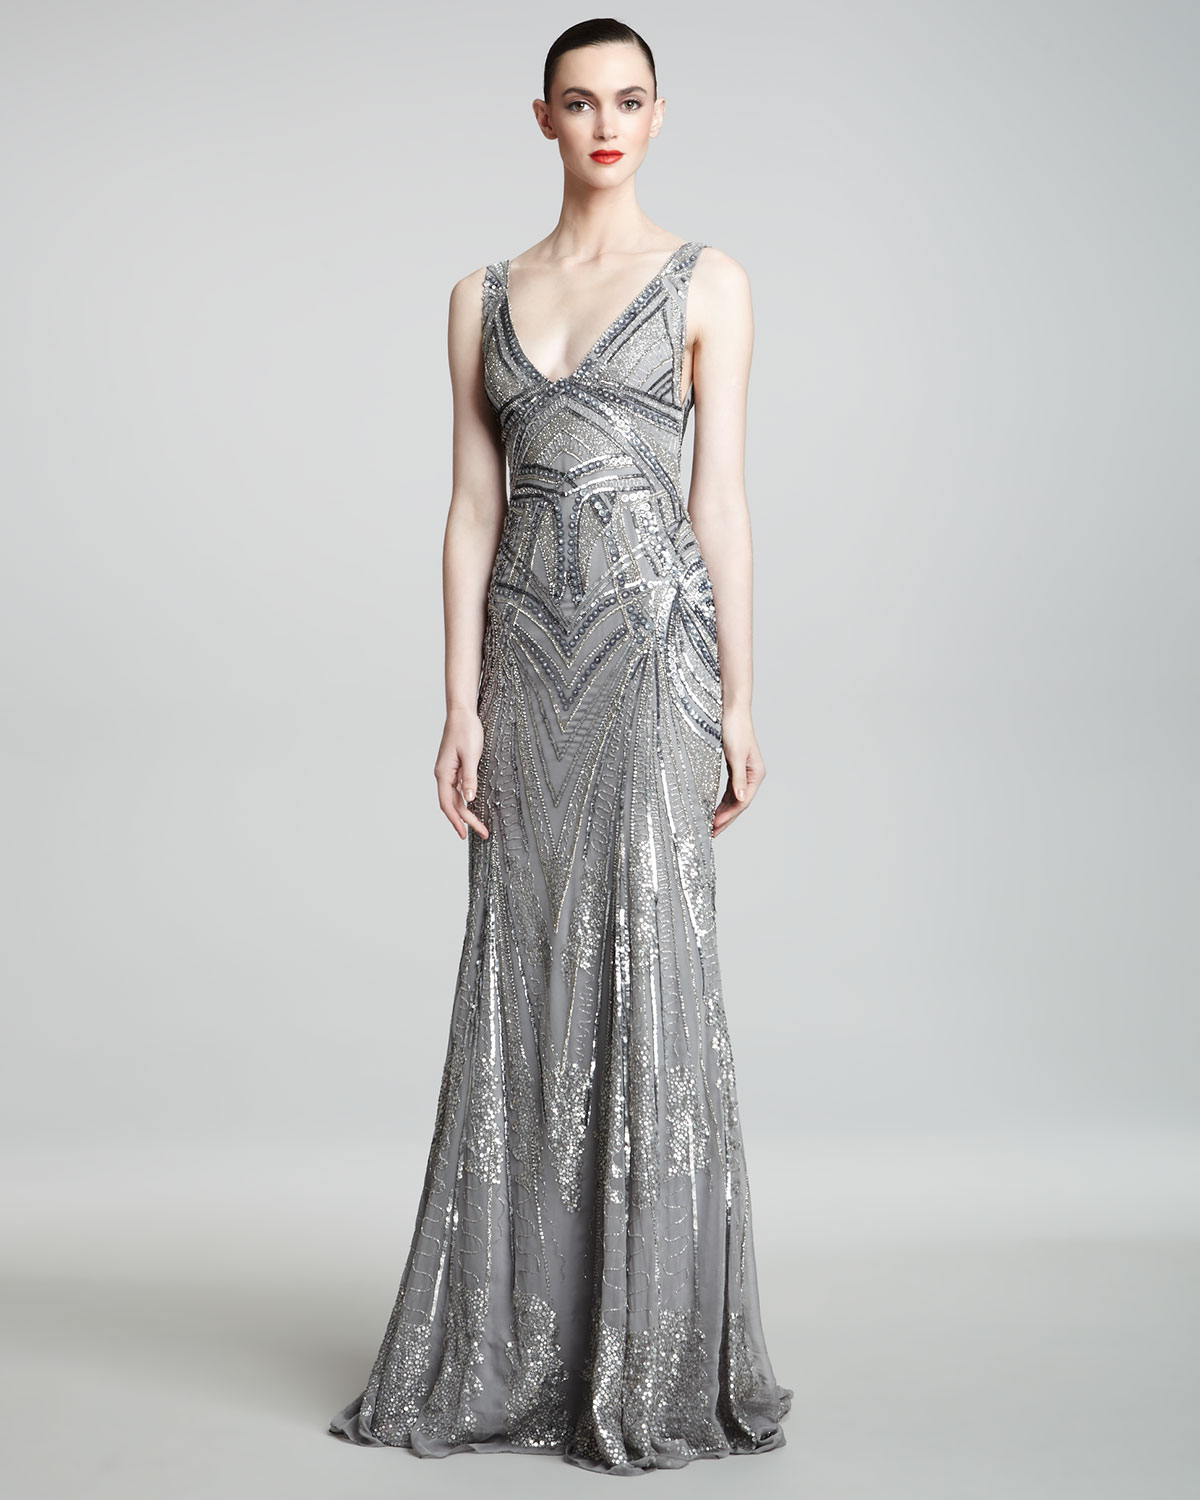 Lyst - Monique Lhuillier Art Deco Embroidered Gown in Metallic